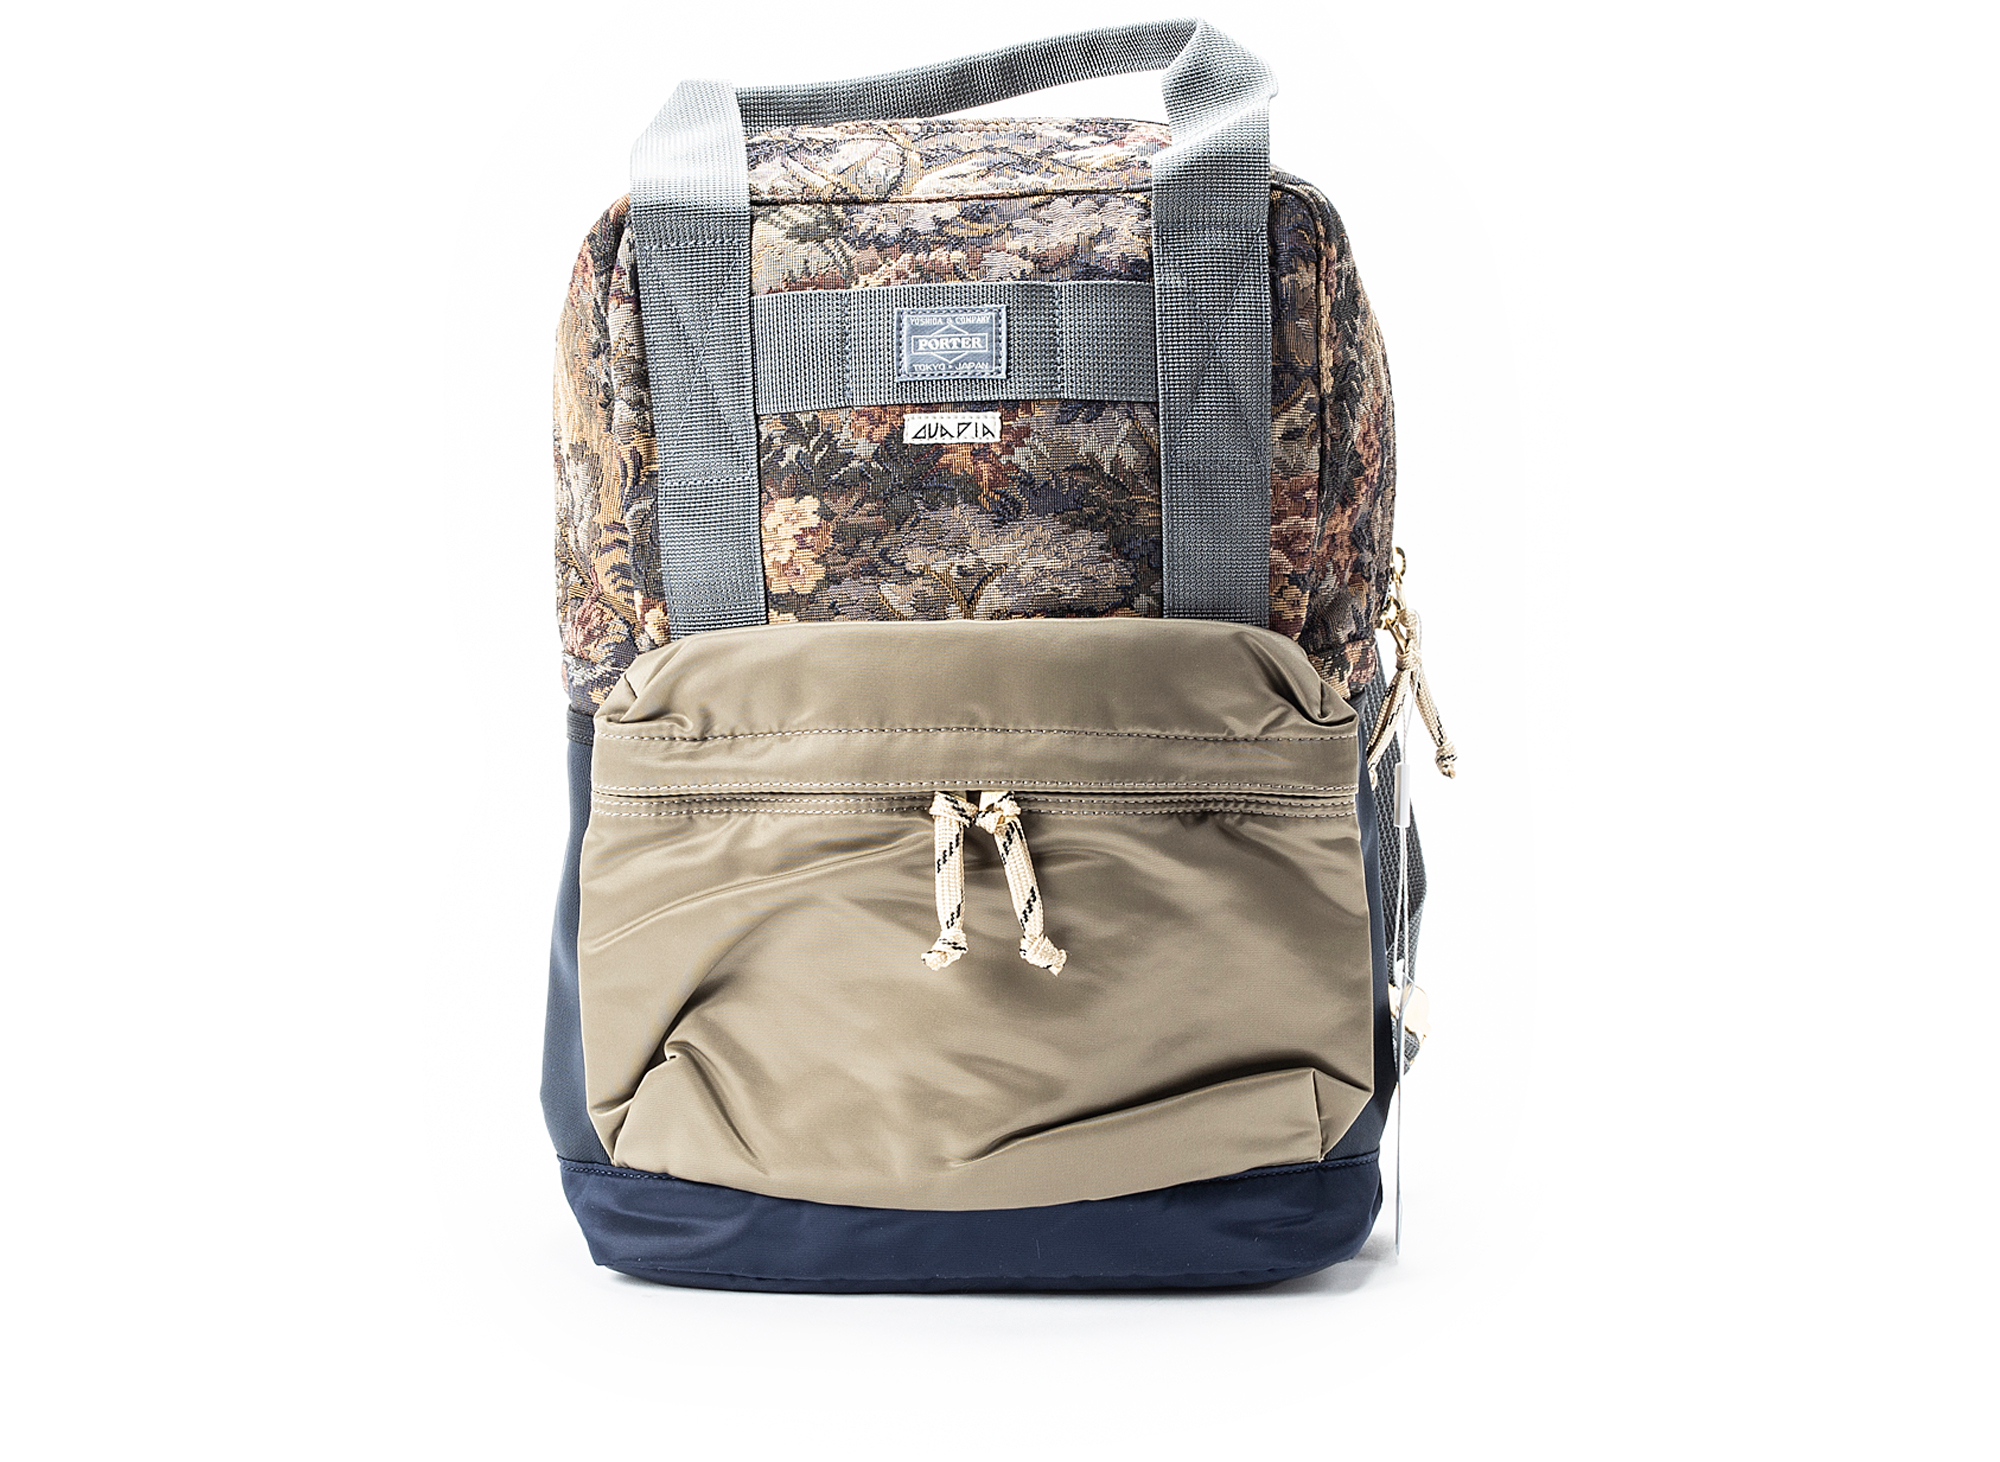 Ovadia & Sons 2-Way Rucksack